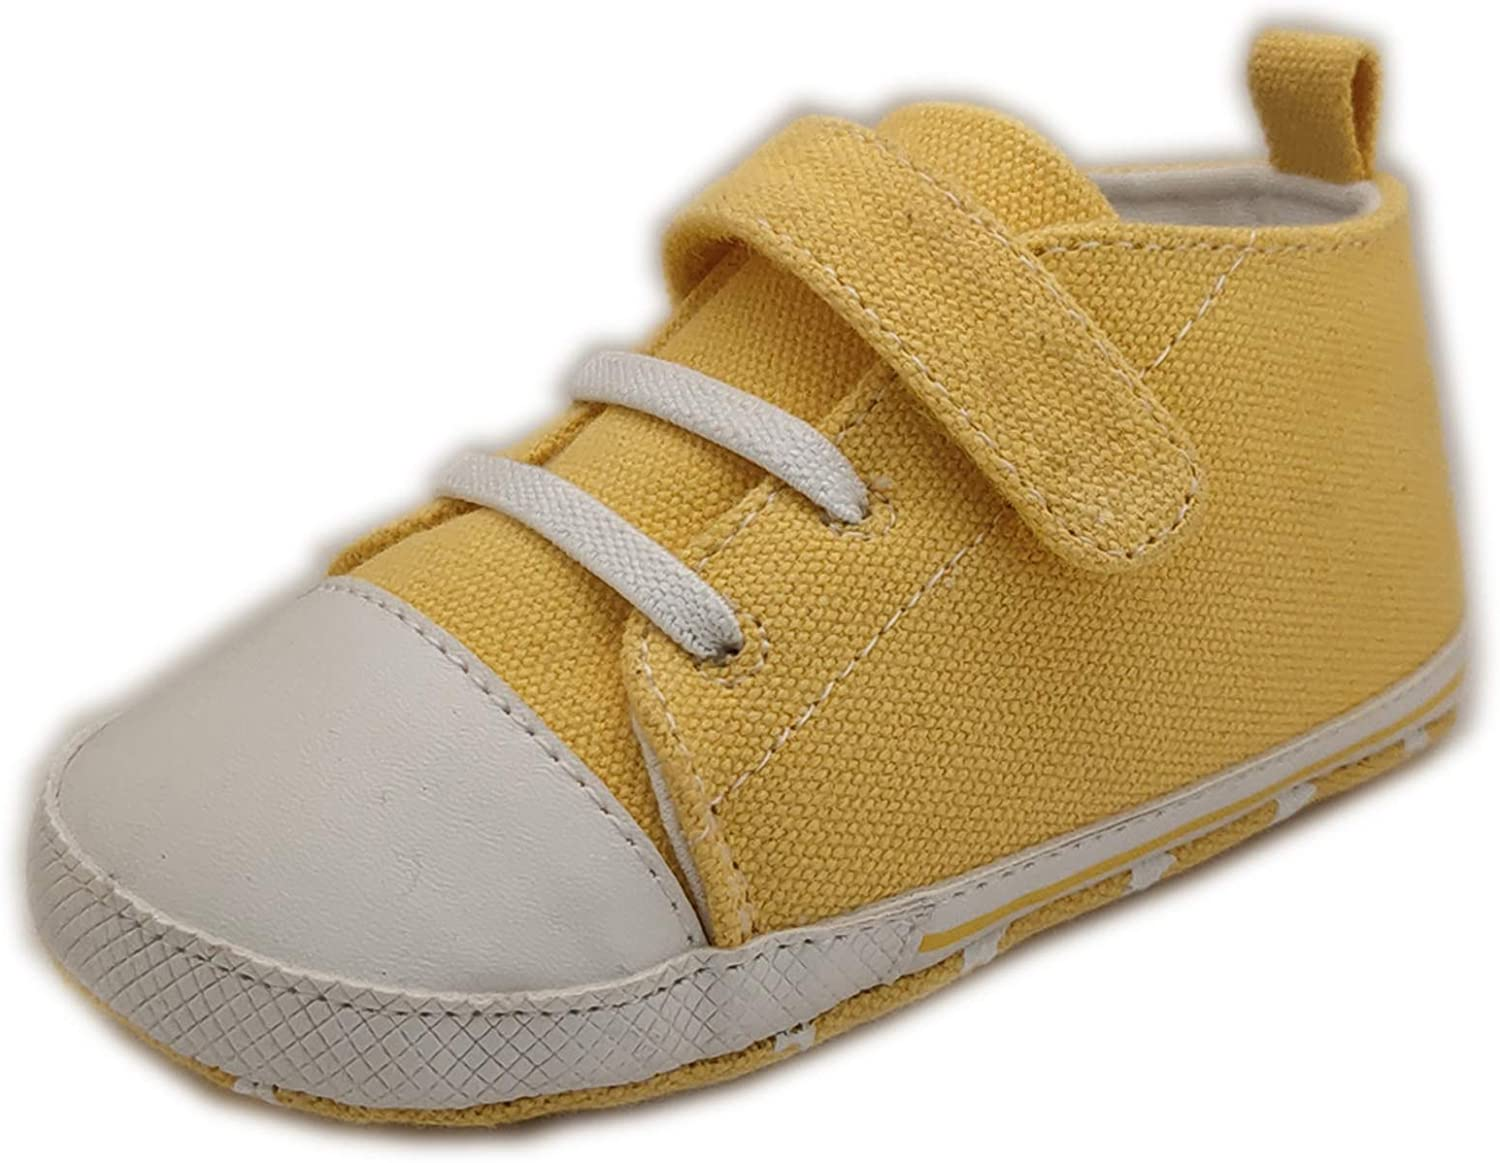 Baby Boys Girls Canvas Toddler Shoes Sneakers with Anti-Slip Soft Sole First Walking Crib Shoe